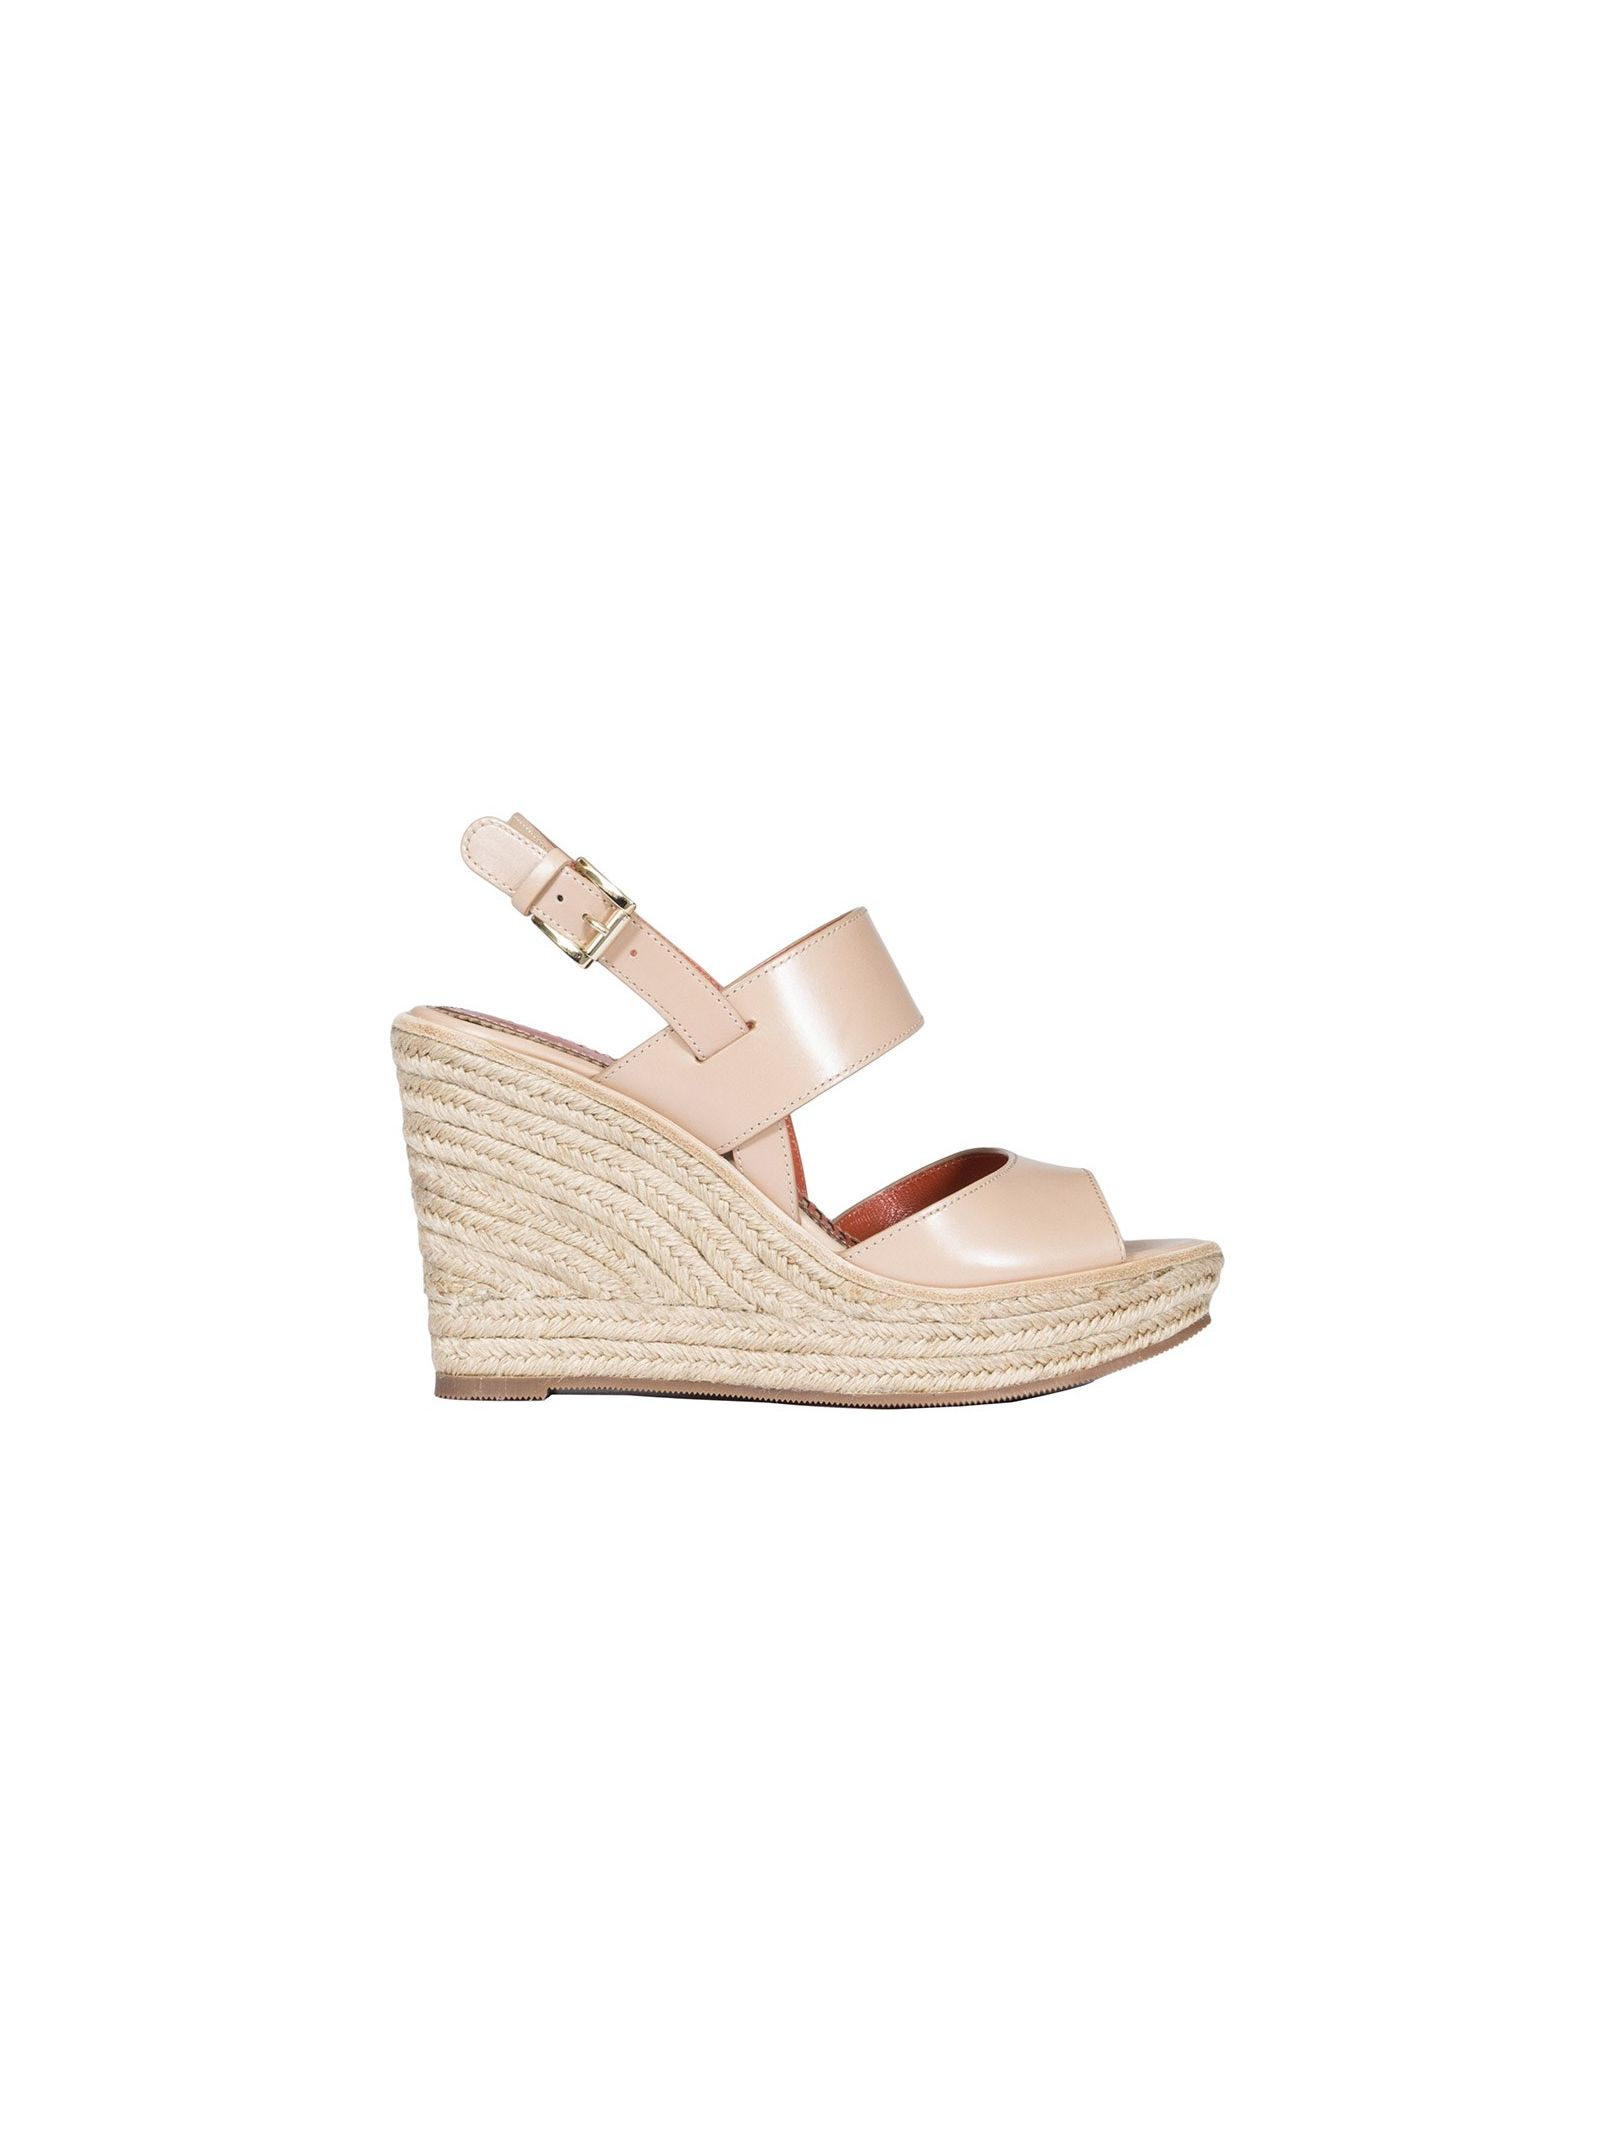 santoni female leather wedge sandals